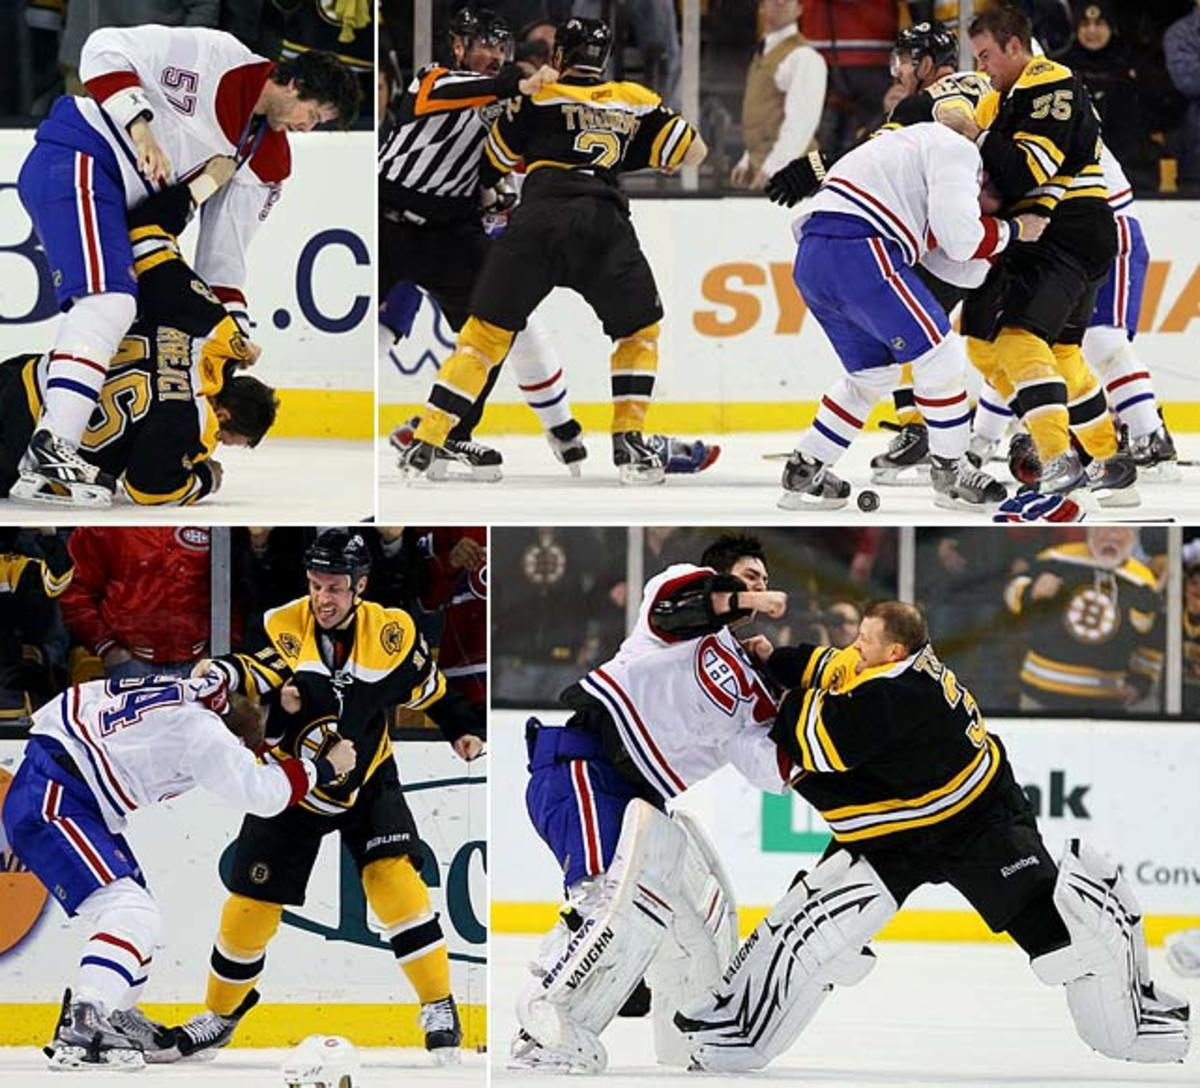 Bruins and Canadiens brawl